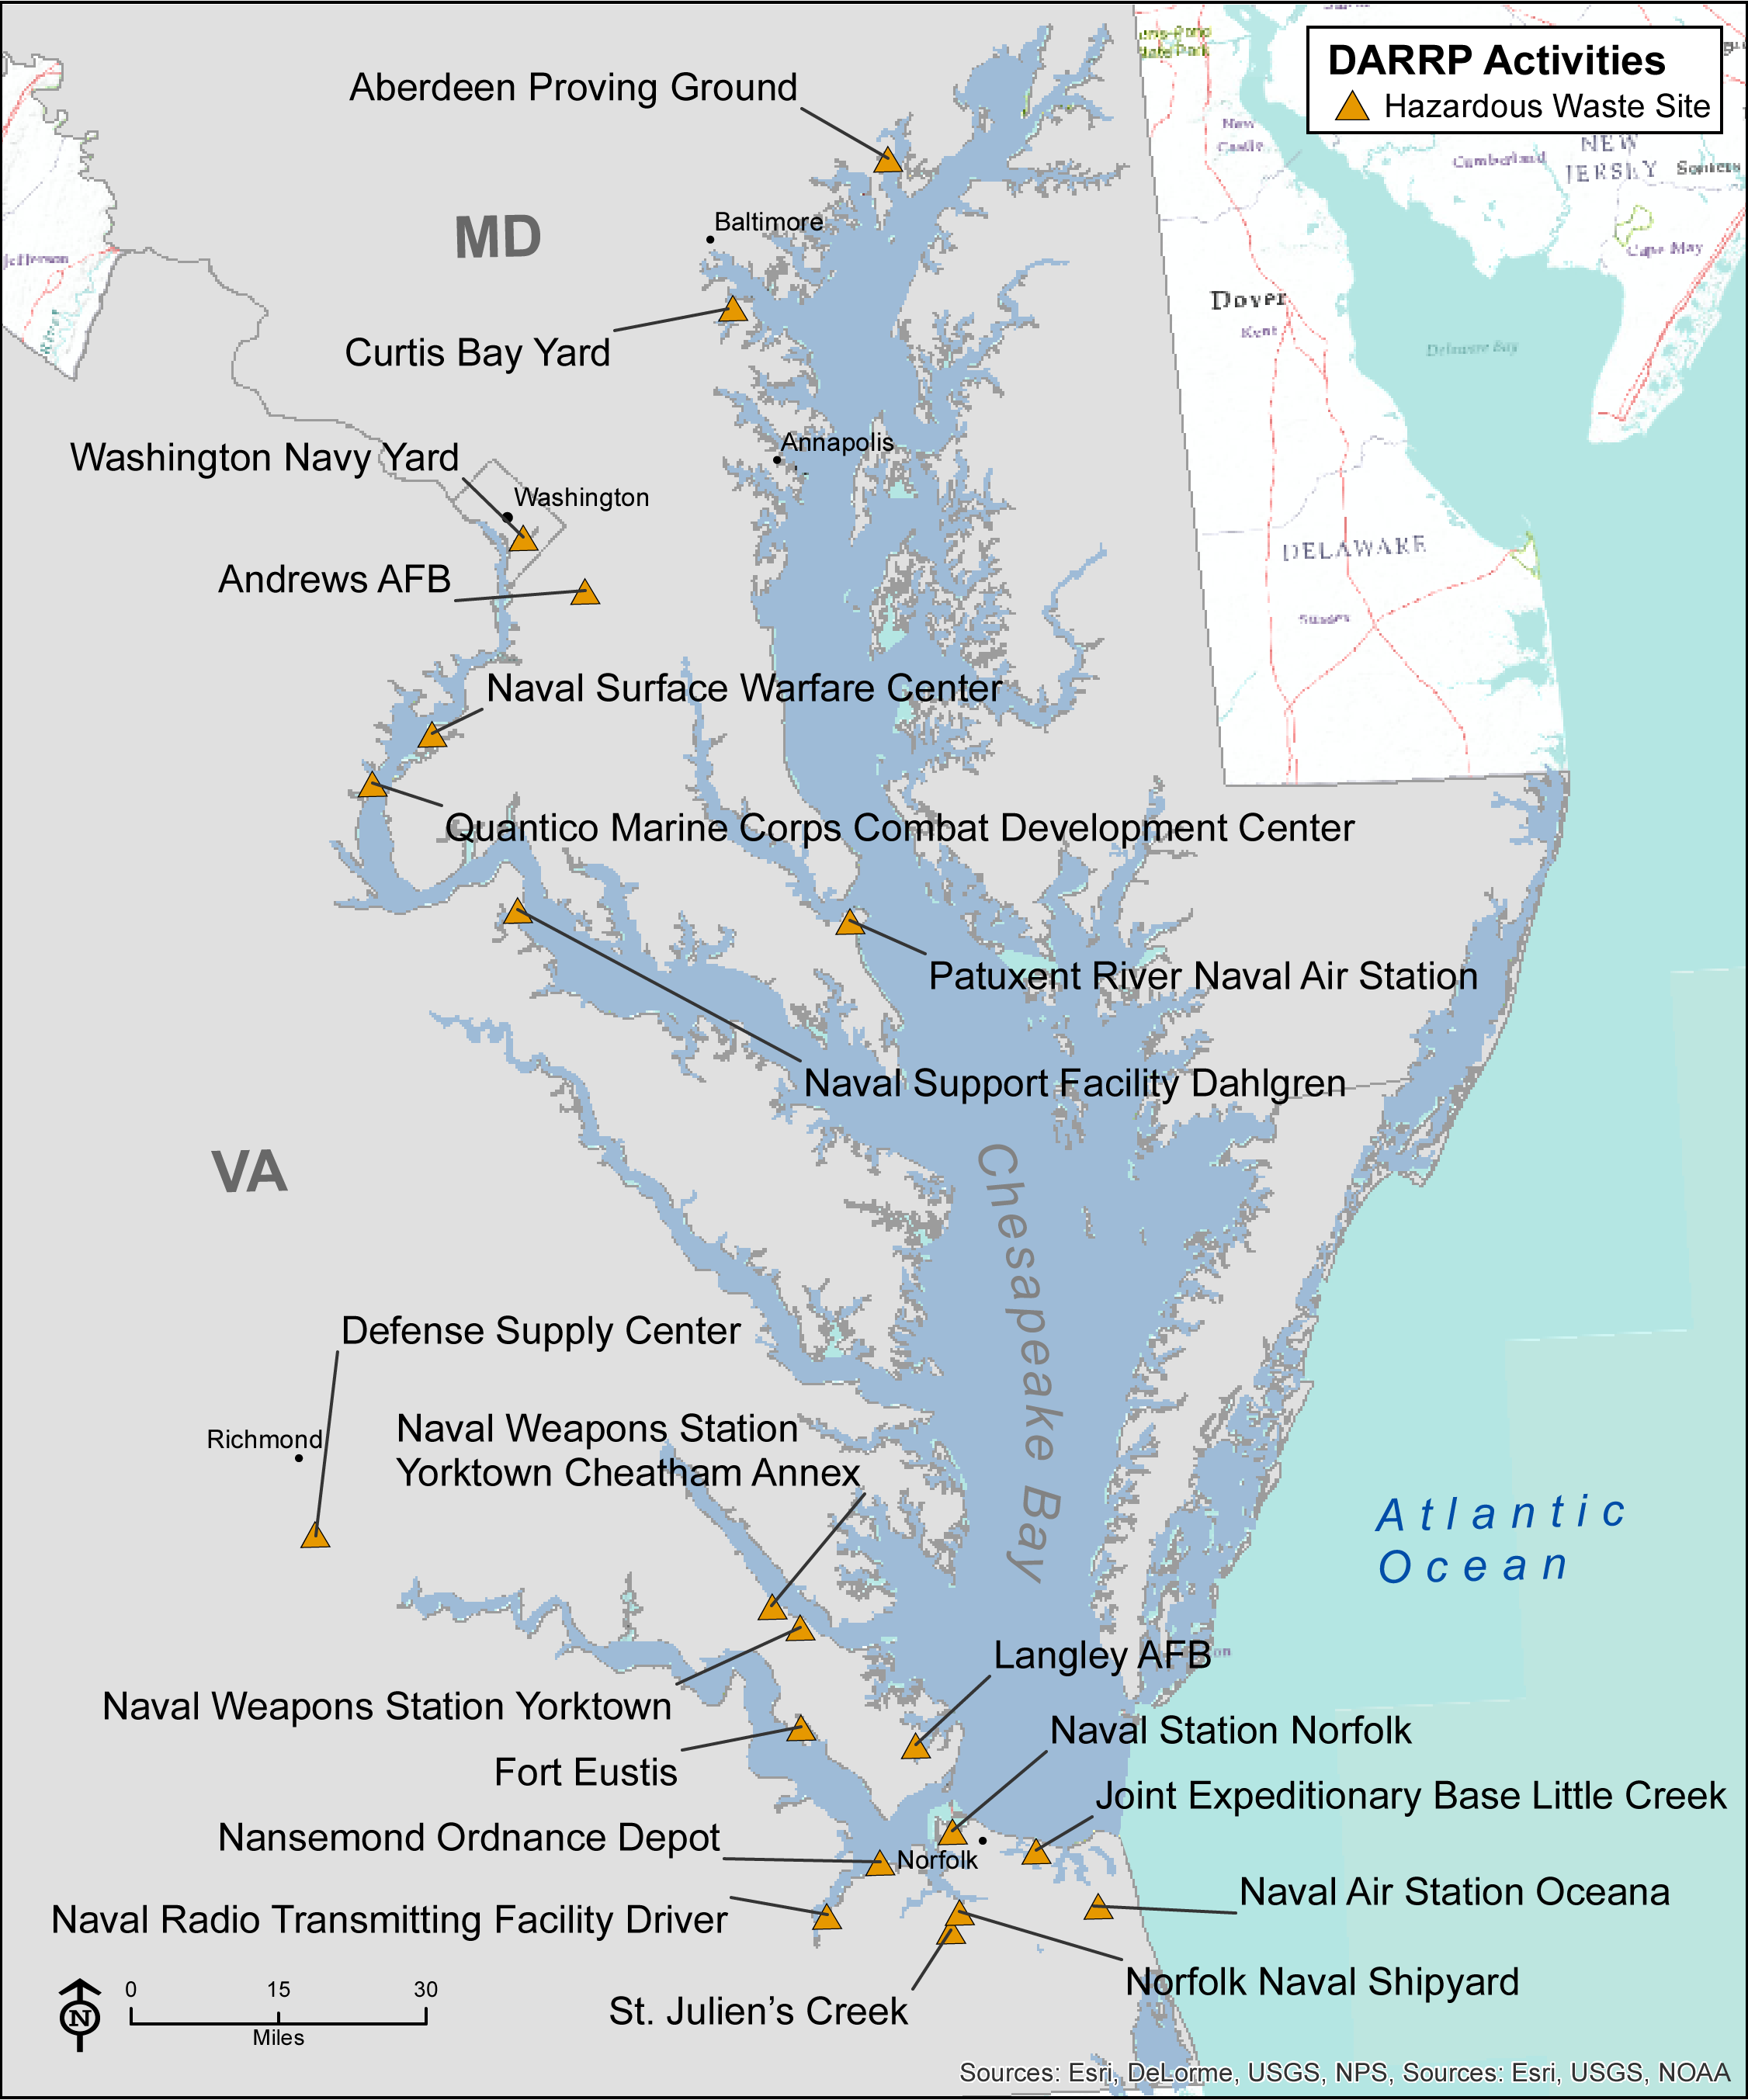 On The Chesapeake Bay Overcoming The Unique Challenges Of Bringing Restoration To Polluted Military Sites Response Restoration Noaa Gov Click border arrows to see adjacent maps. on the chesapeake bay overcoming the